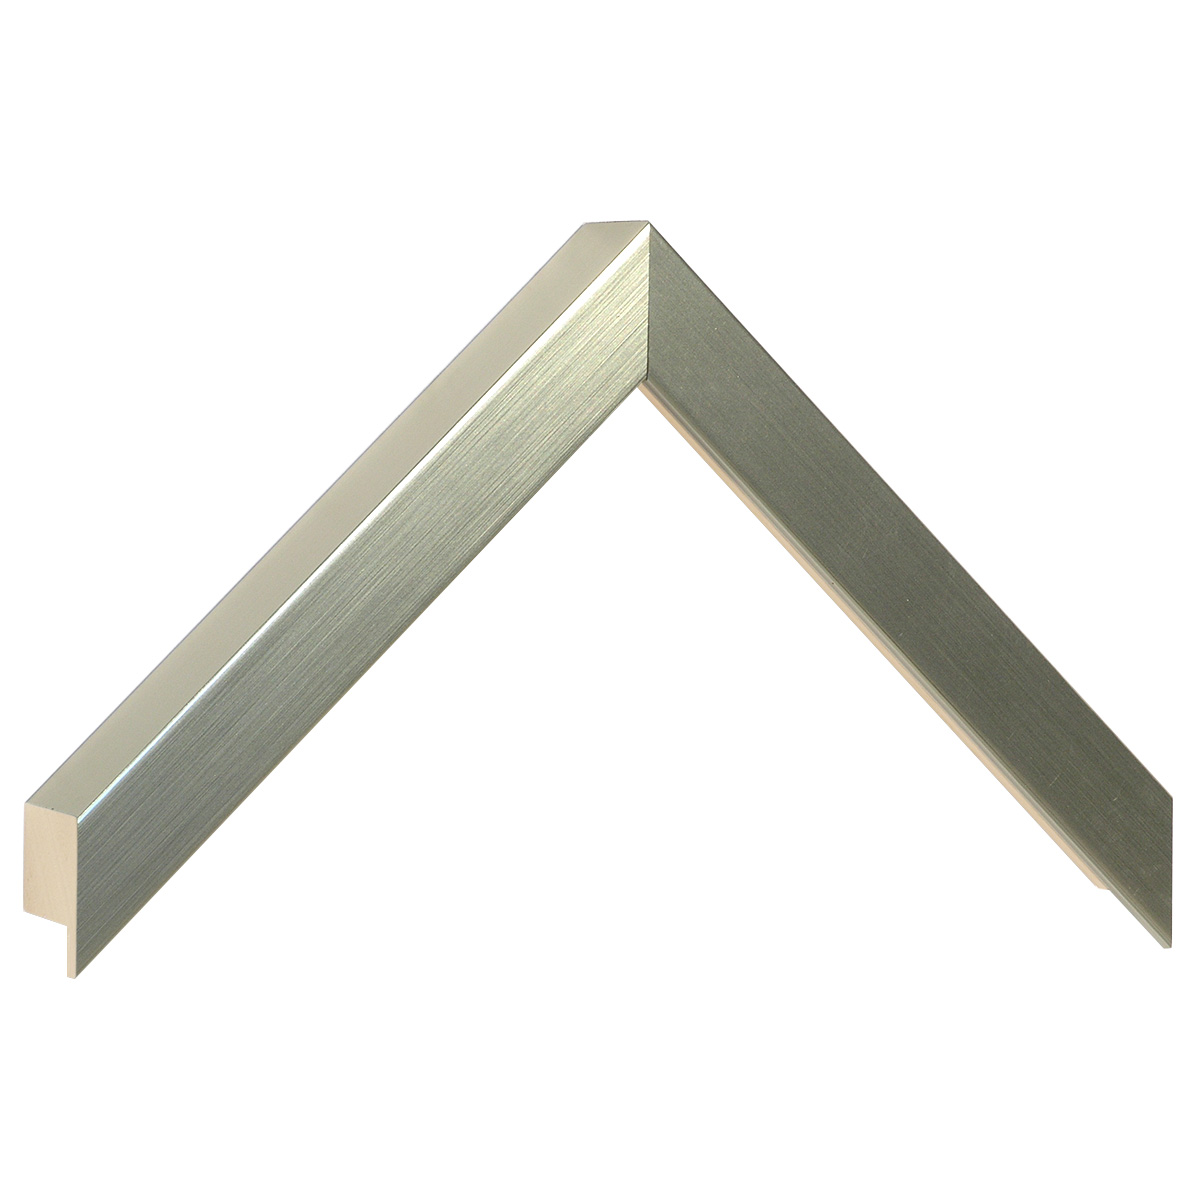 Moulding ayous, width 20mm height 32 - platinum